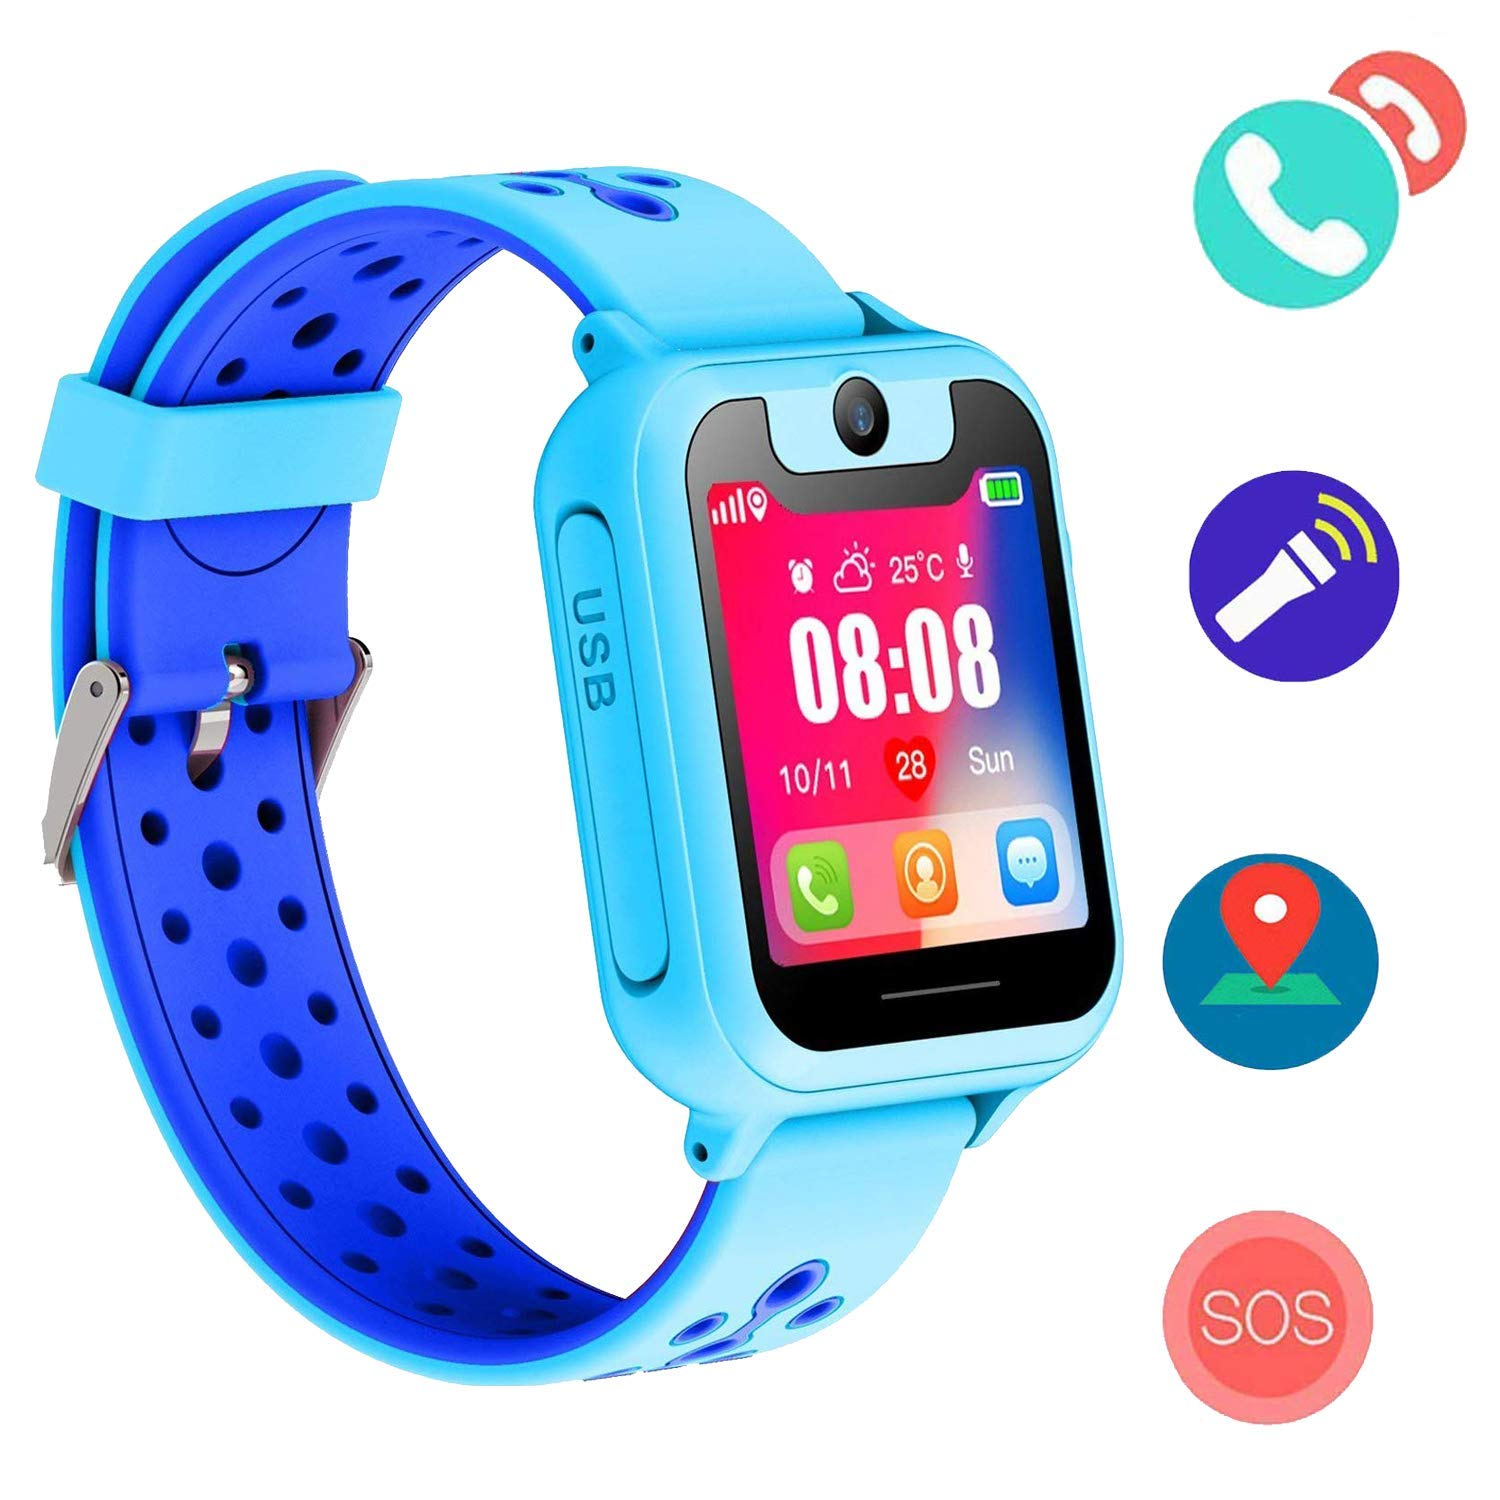 Kids SmartWatch LBS Tracker Watch Phone with SOS Camera 1.44 HD Screen Games for 3-12 Year Old Boys Girls(Blue)